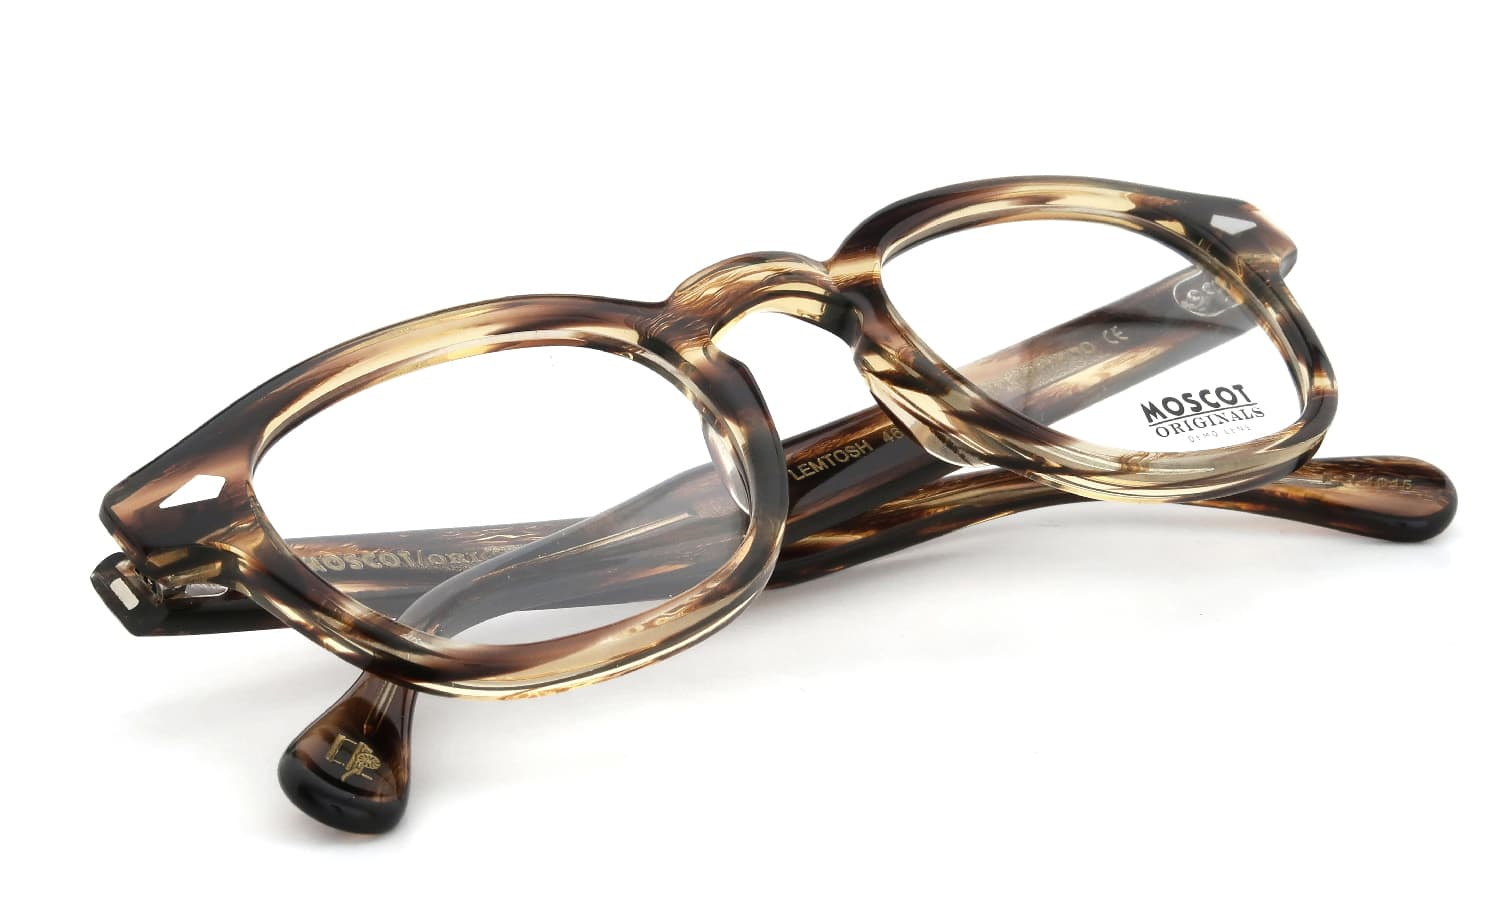 MOSCOT LEMTOSH BAMBOO 46size